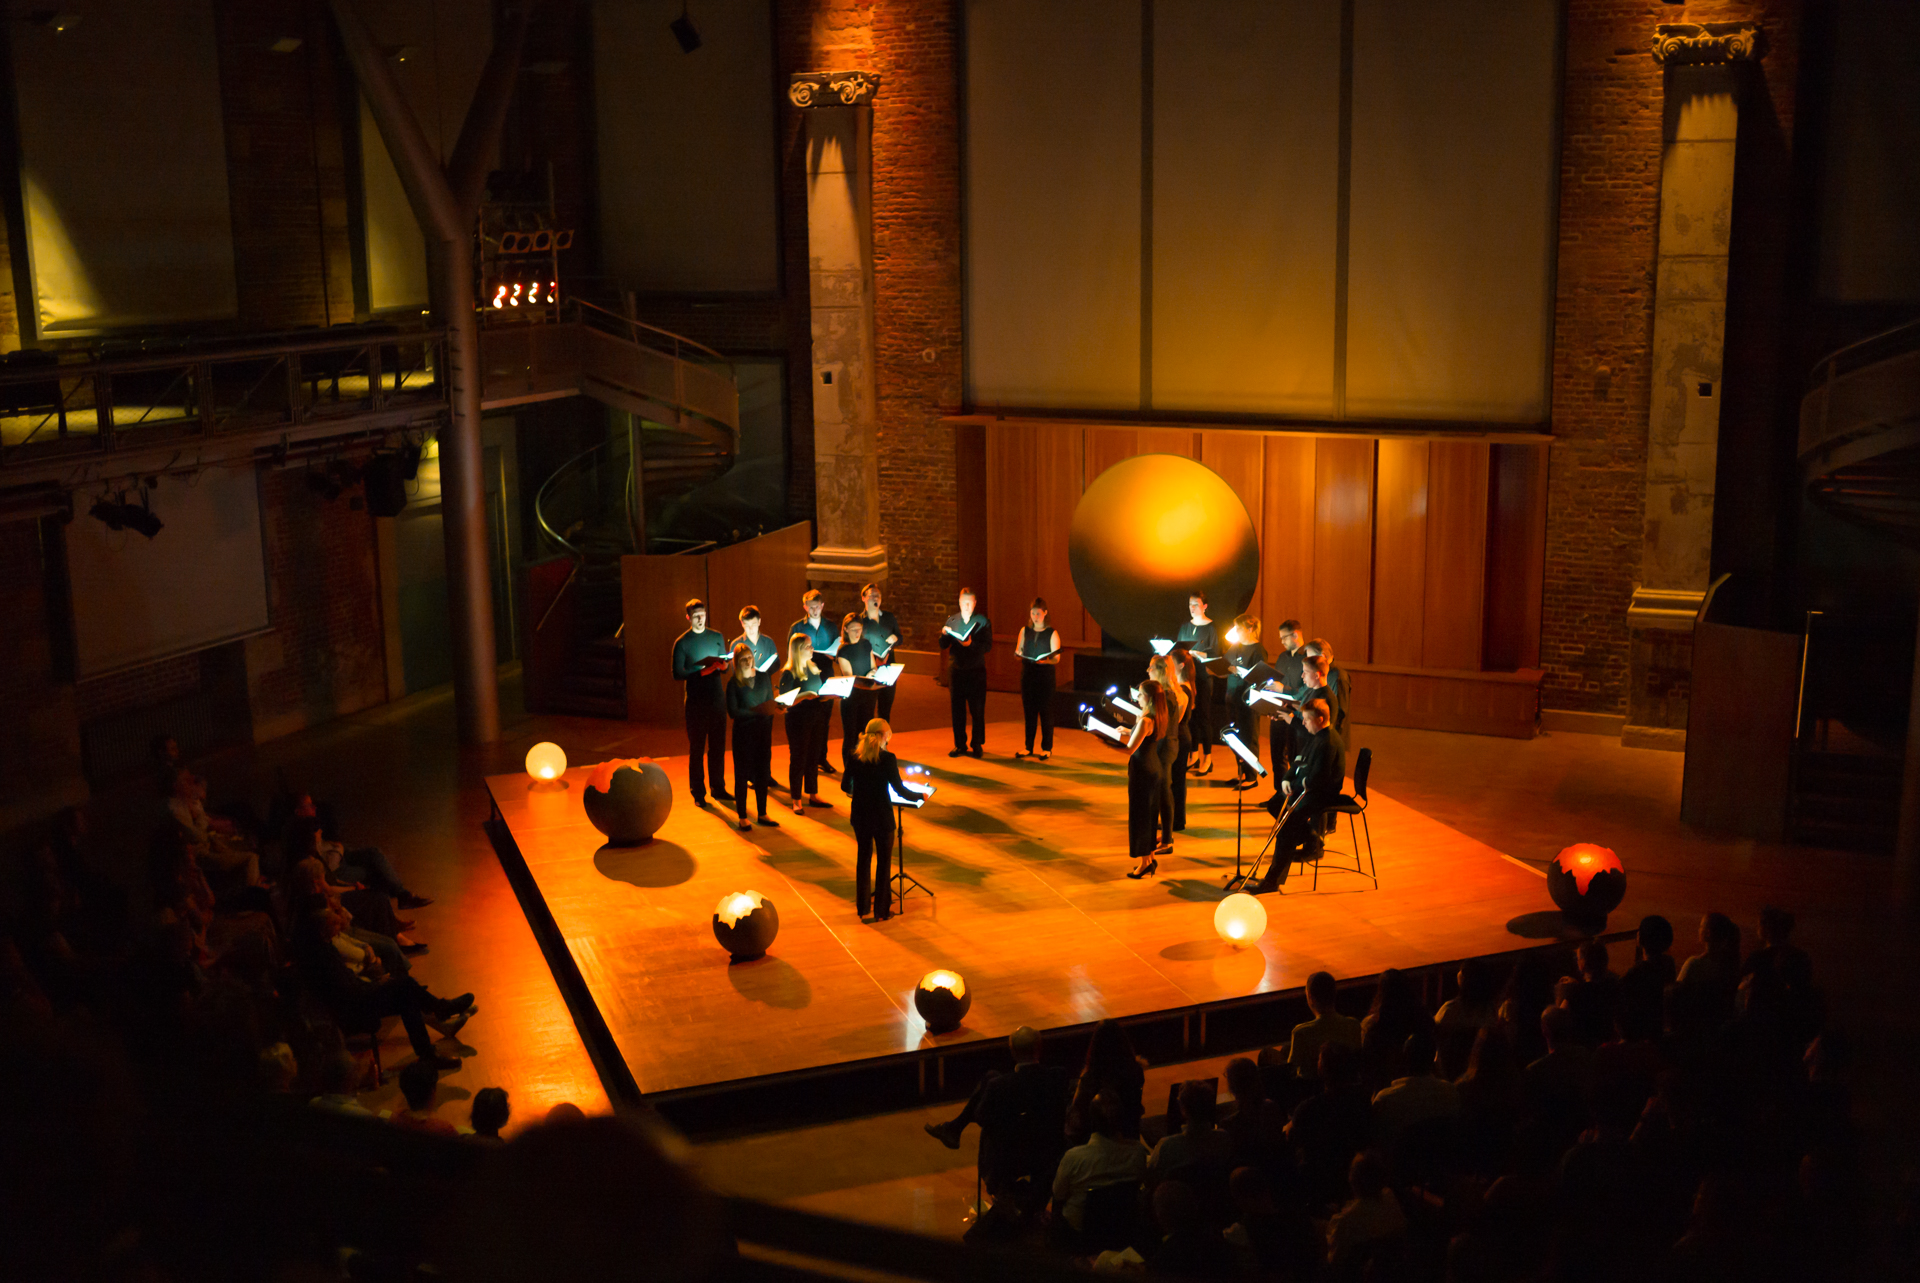 Pushing the boundaries of choral performance - Artist in Residence at London's LSO St Luke's.